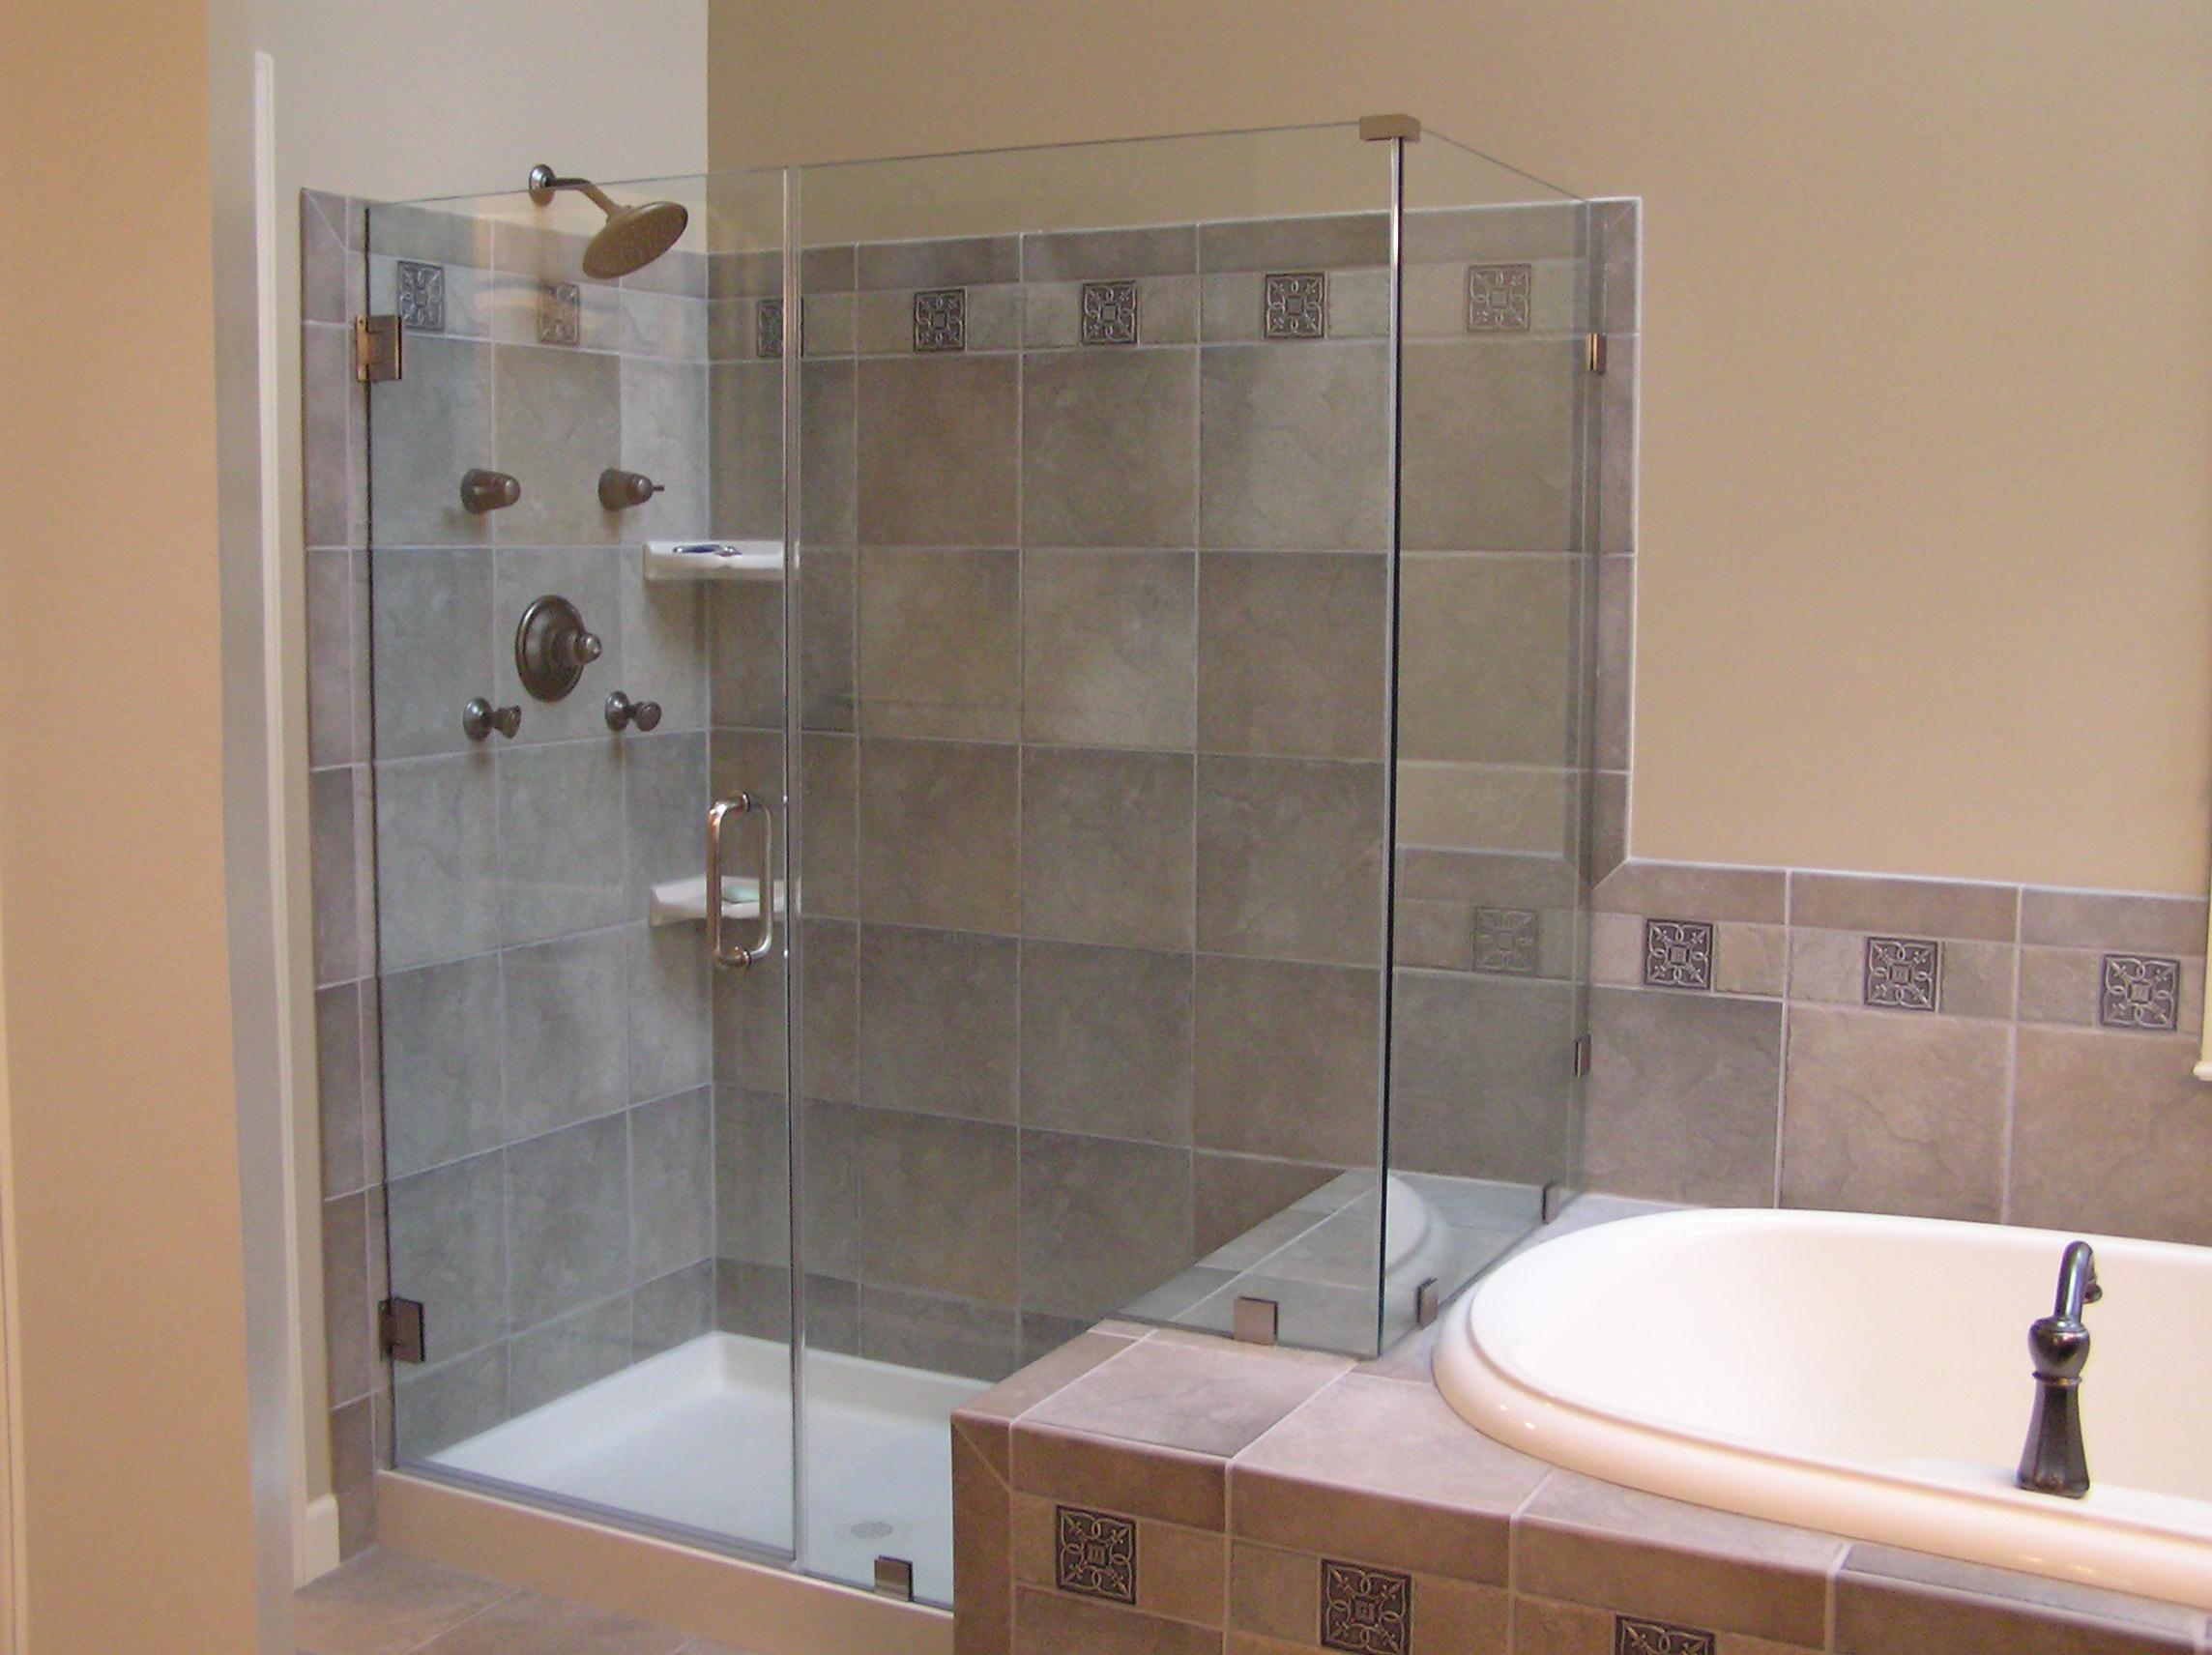 How much does it cost to do a bathroom renovation - Looking For Bathroom Remodeling Contractors In Wilmington De